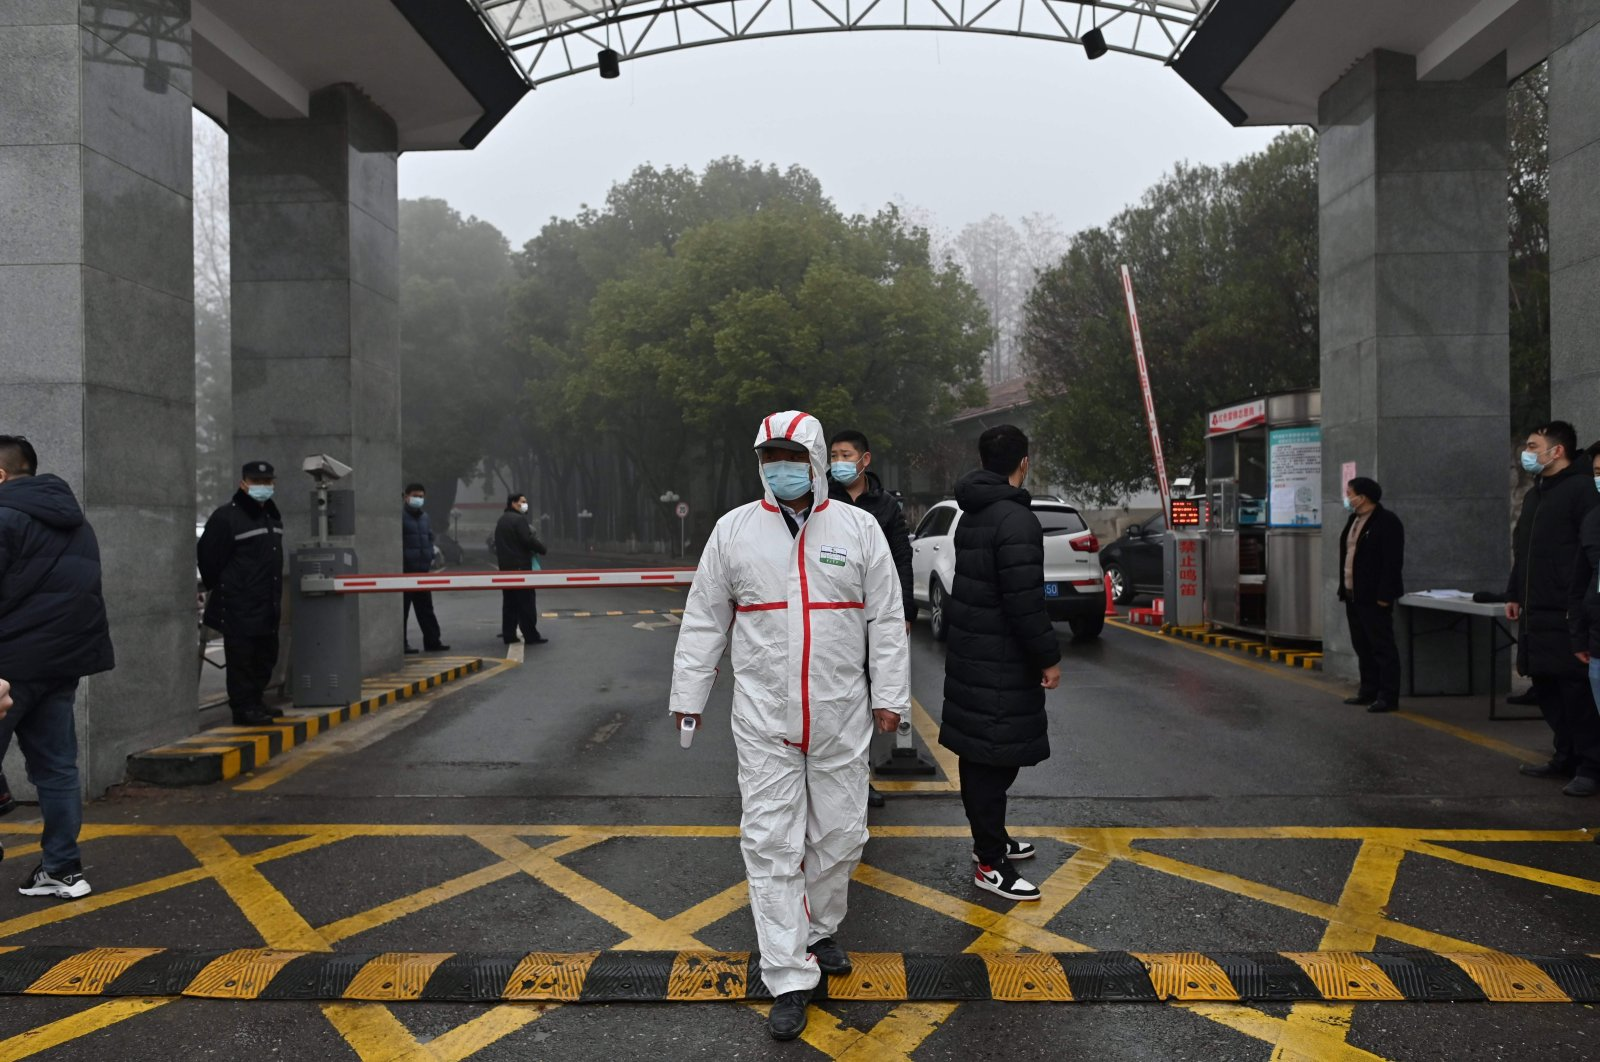 A guard wearing protective gear is at the entrance of the Hubei Provincial Center for Disease Control (Hubei CDC) while members of the World Health Organization (WHO) team investigating the origins of the coronavirus visit the place, Wuhan, Hubei province, central China, Feb. 1, 2021. (AFP Photo)